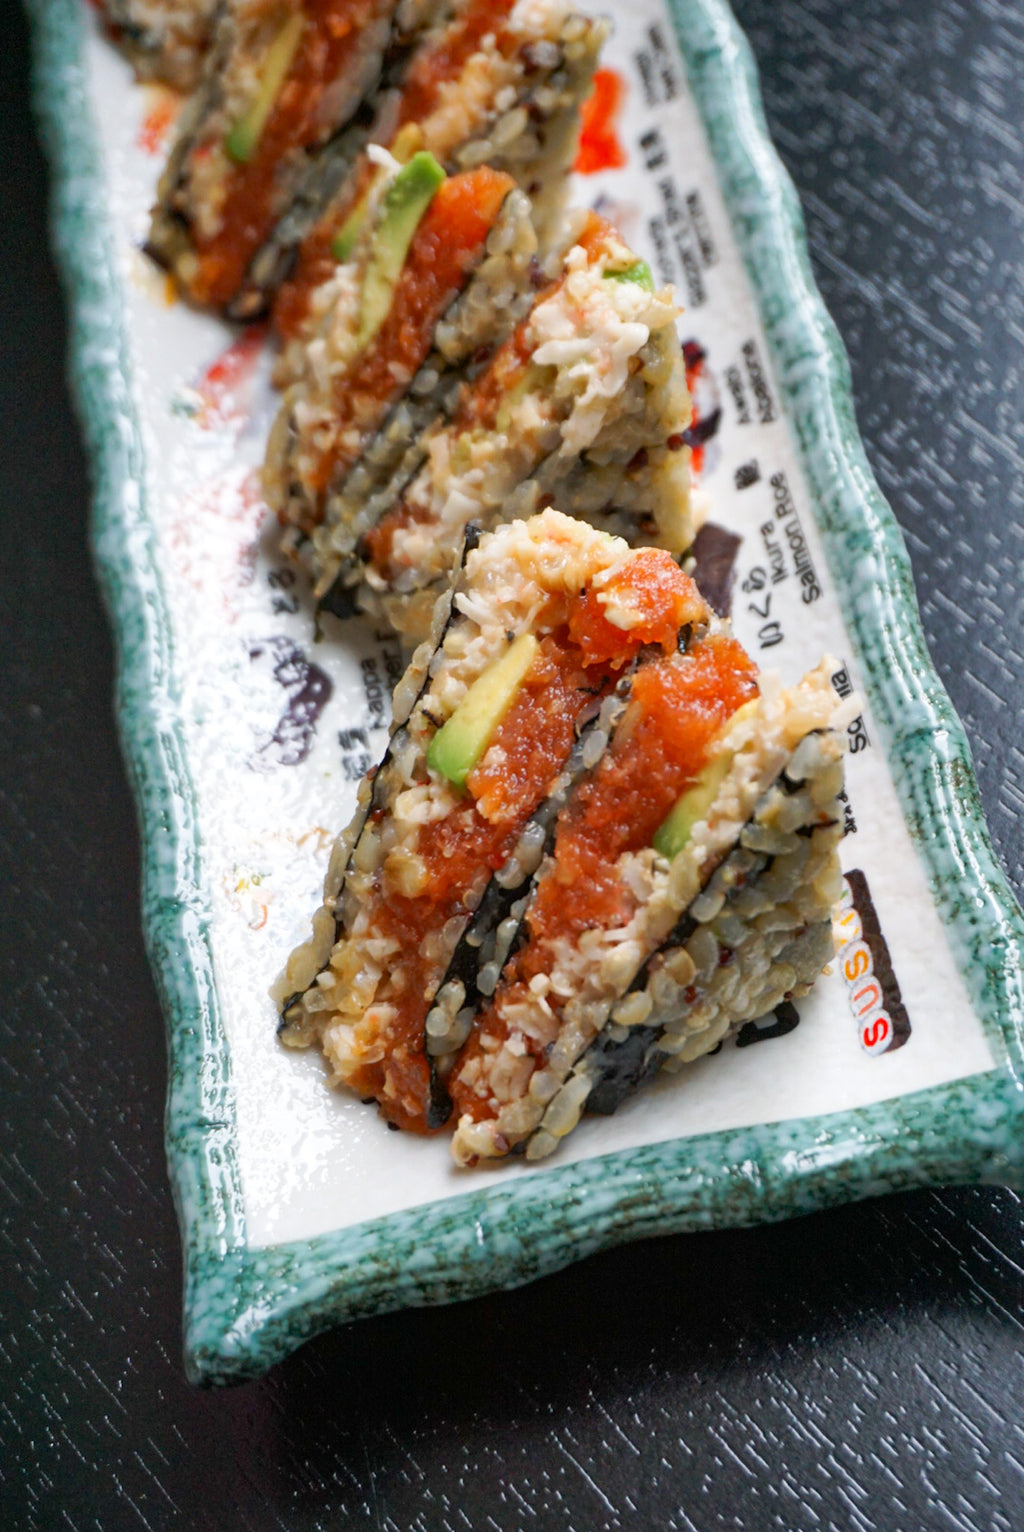 Brown Rice Quinoa Spicy Tuna Sandwich - Park Slope